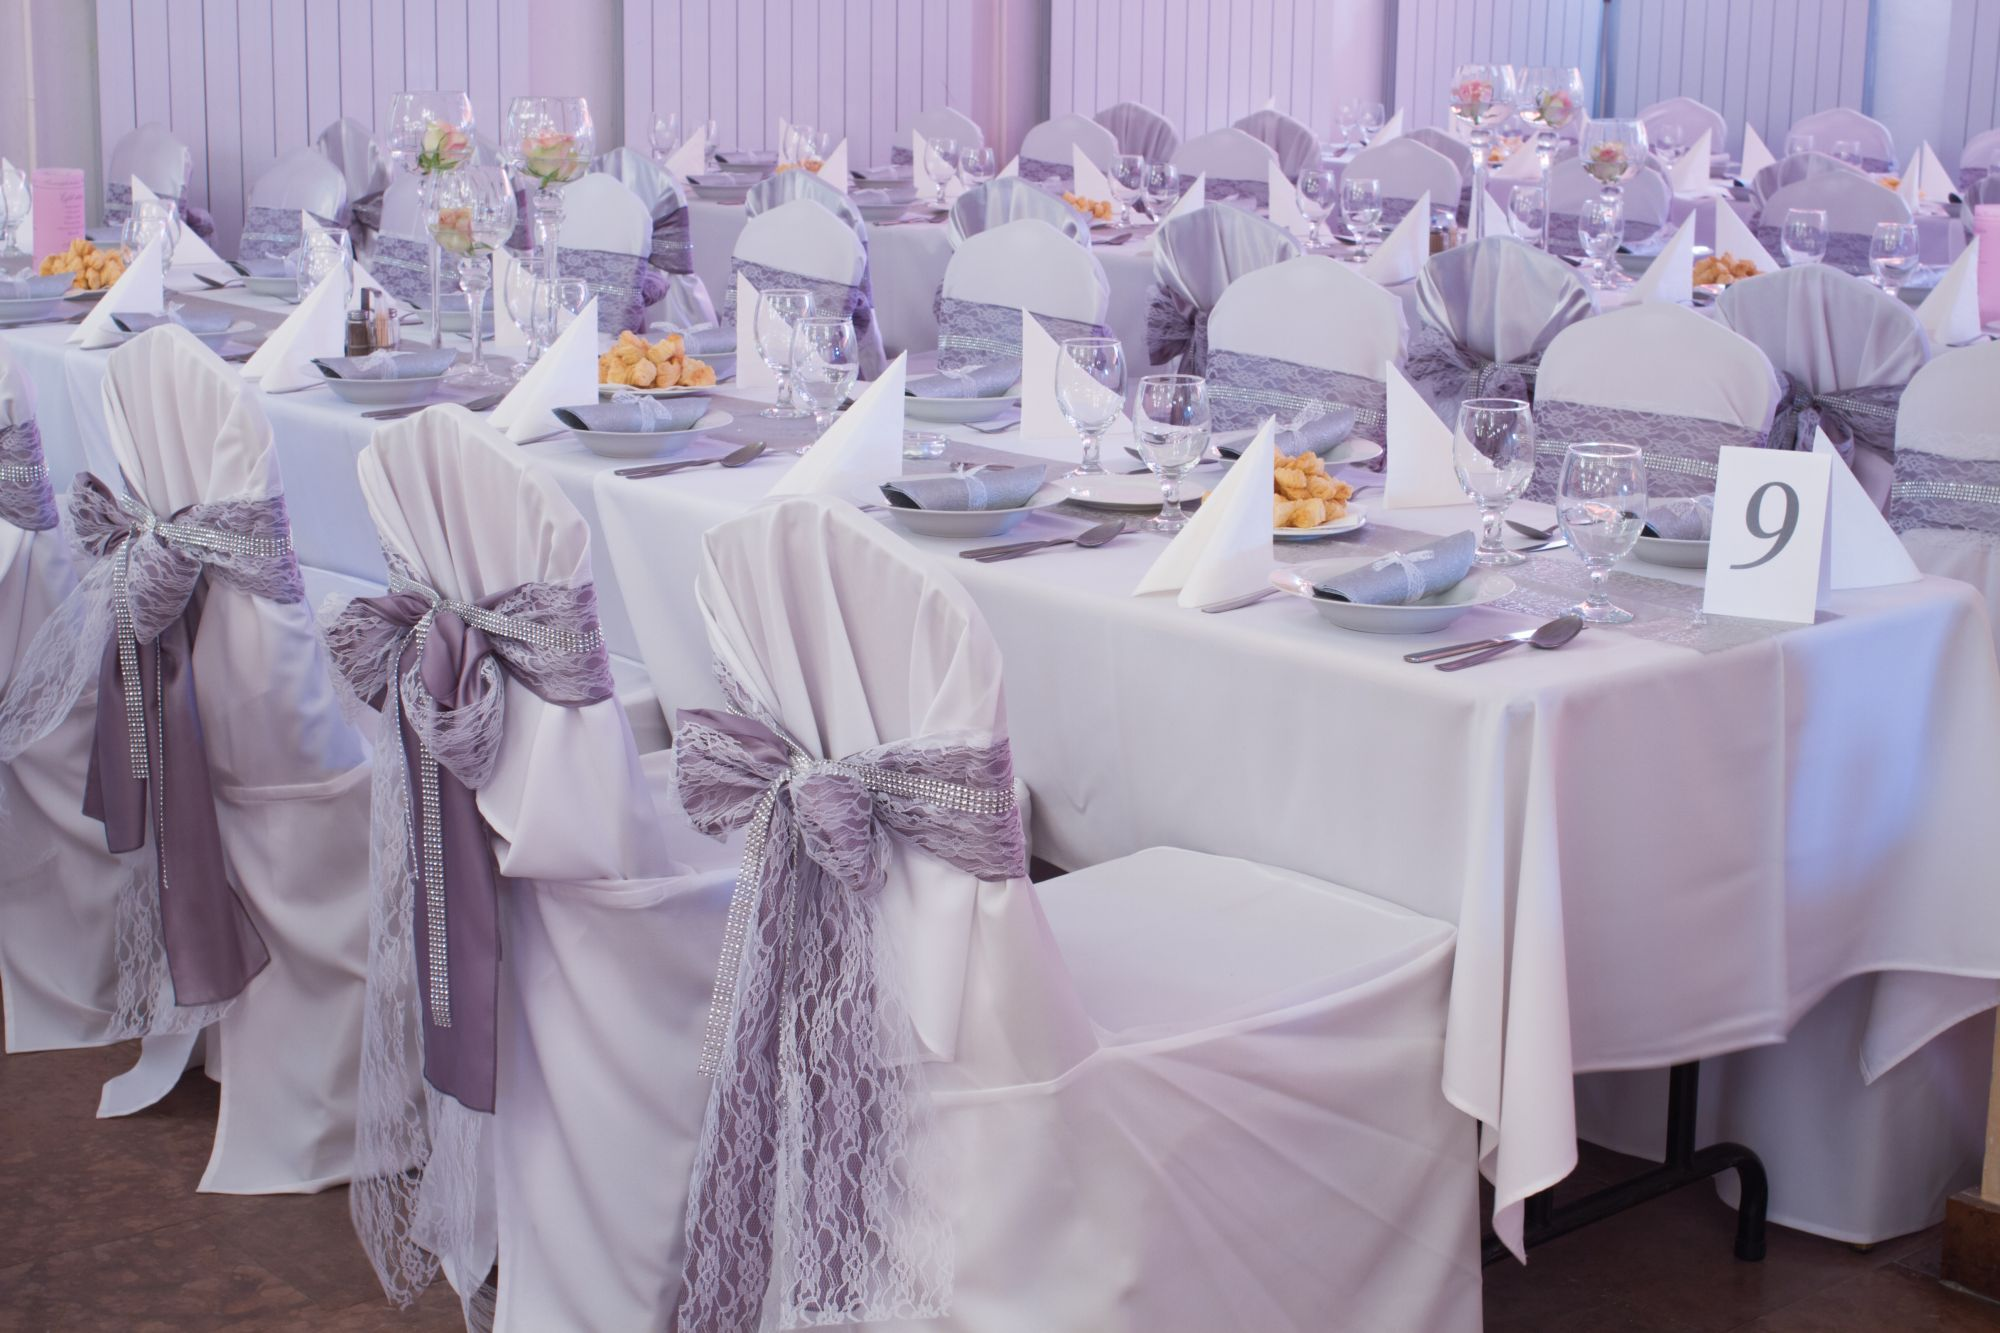 banquet table with tablecloths, chair covers and chair sashes